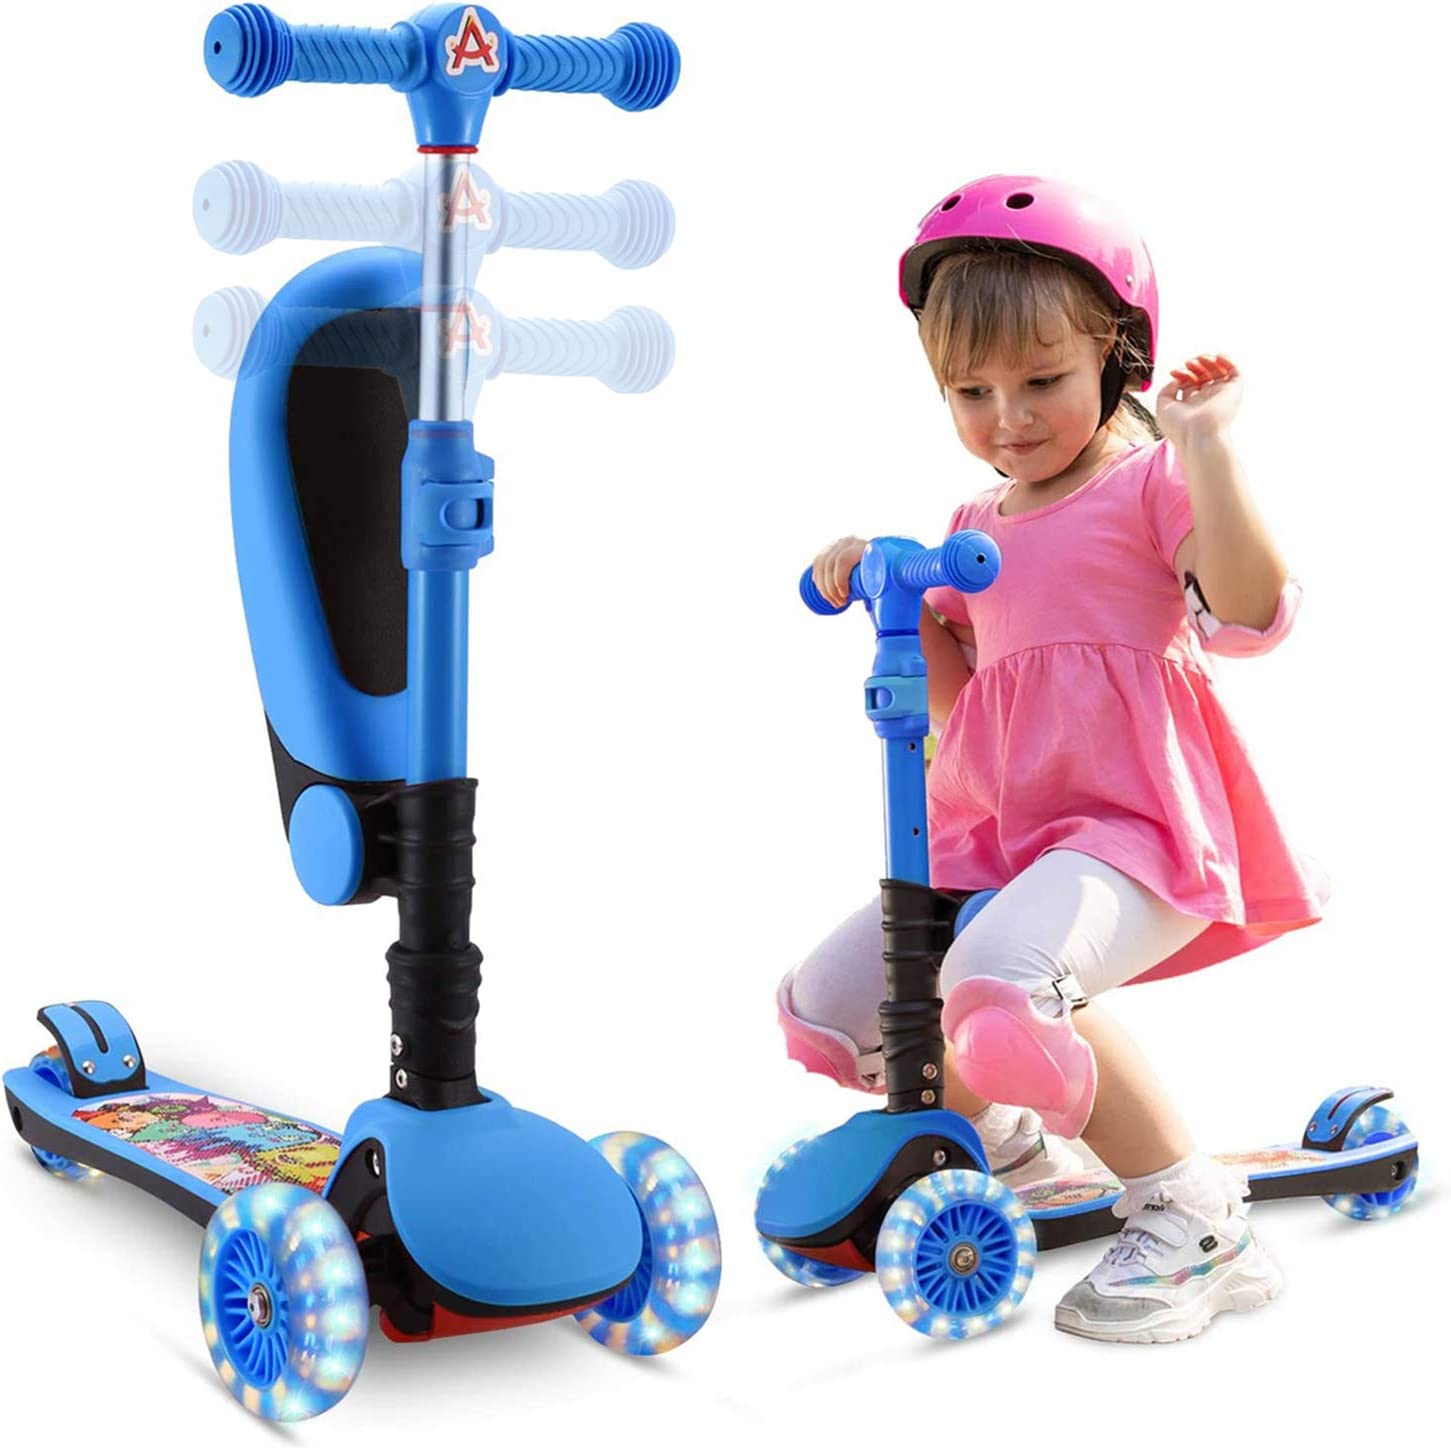 Adjustable 2-In-1 Balance Scooter With Removable Seat Great For Kids Toddlers US